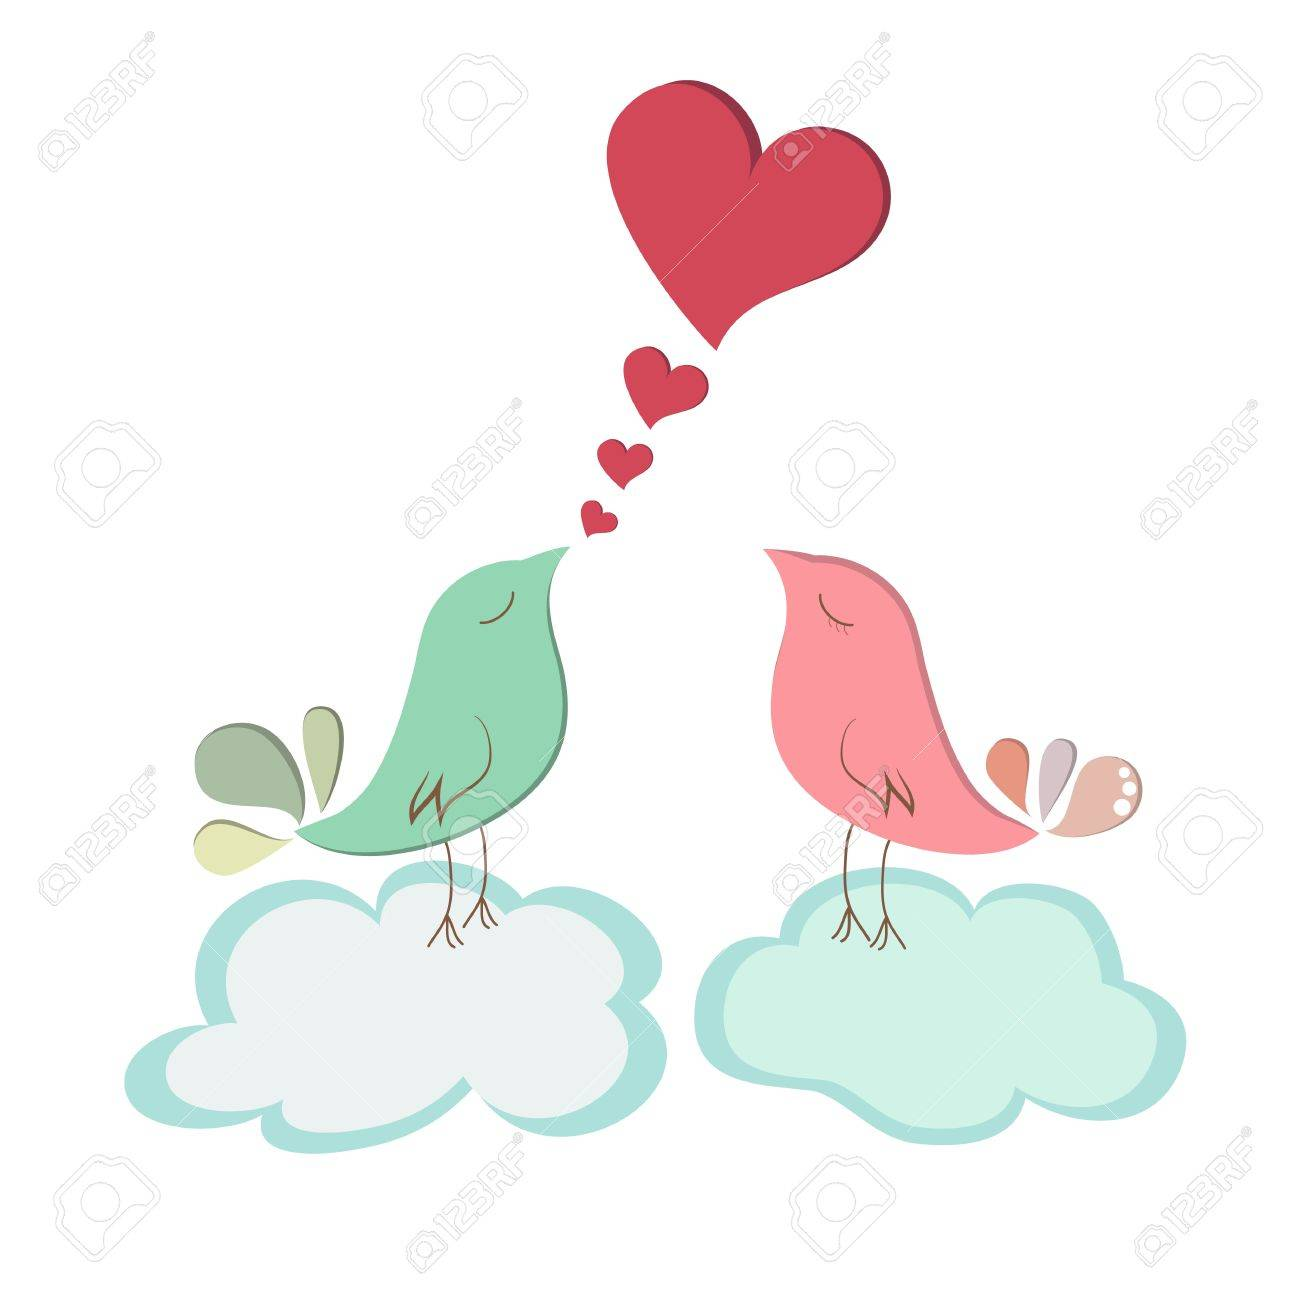 Couple bird message with blue cloud Stock Vector - 17297383